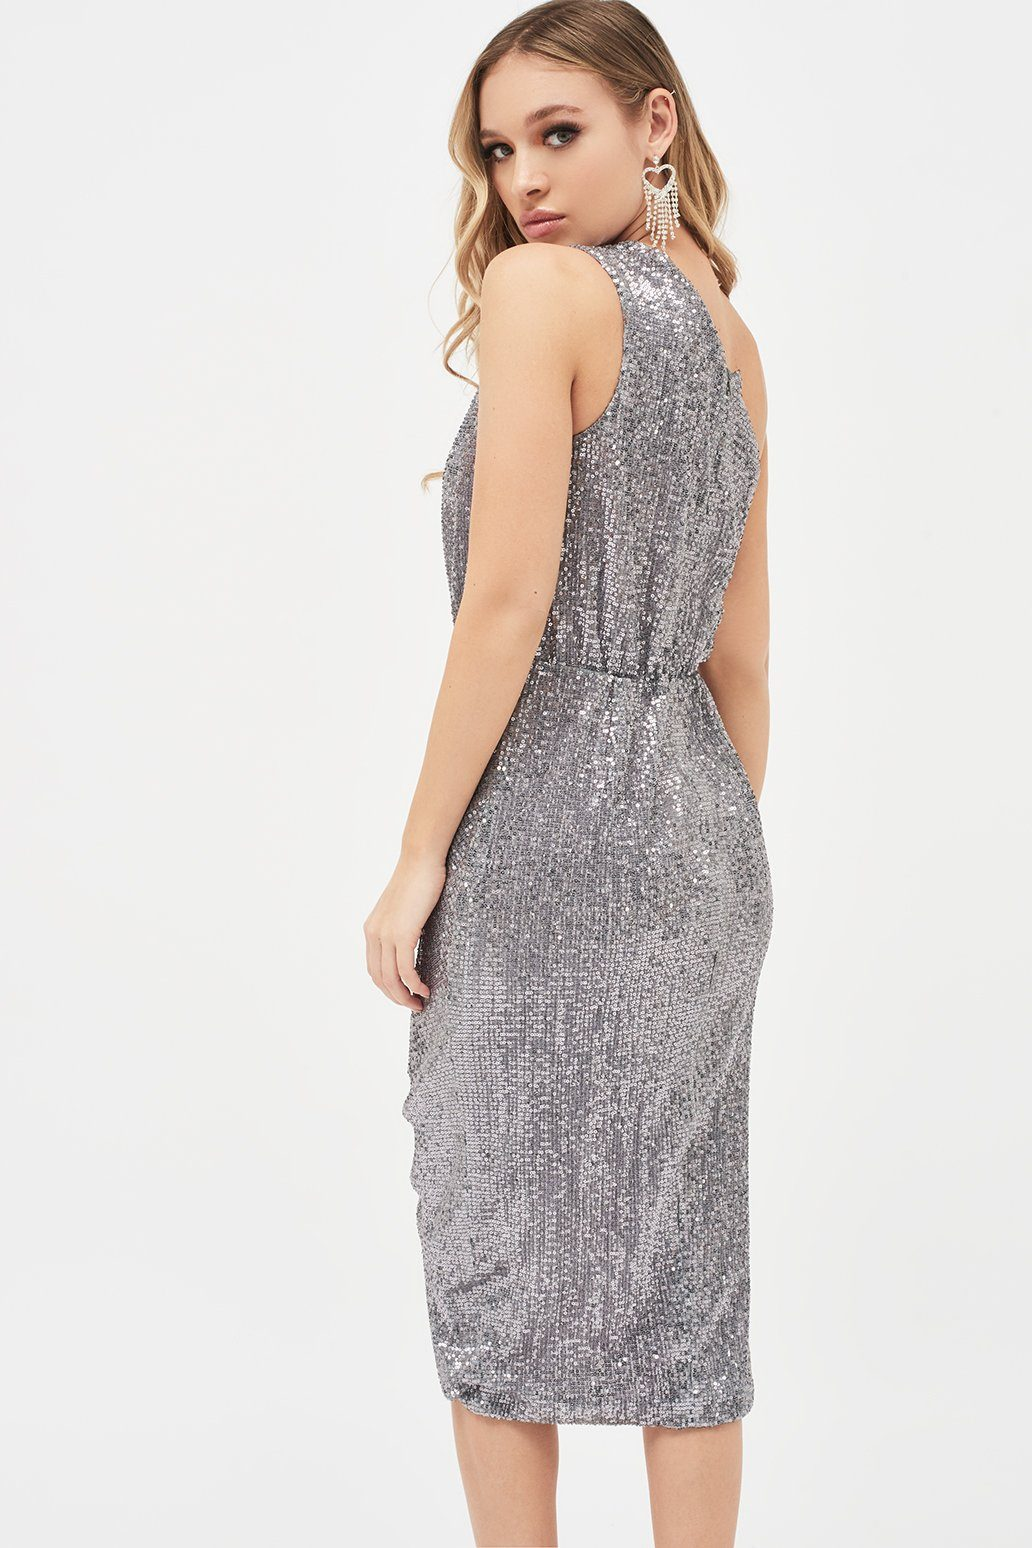 Pleated Sequin One Shoulder Cut Out Ruched Side Midi Dress in Grey